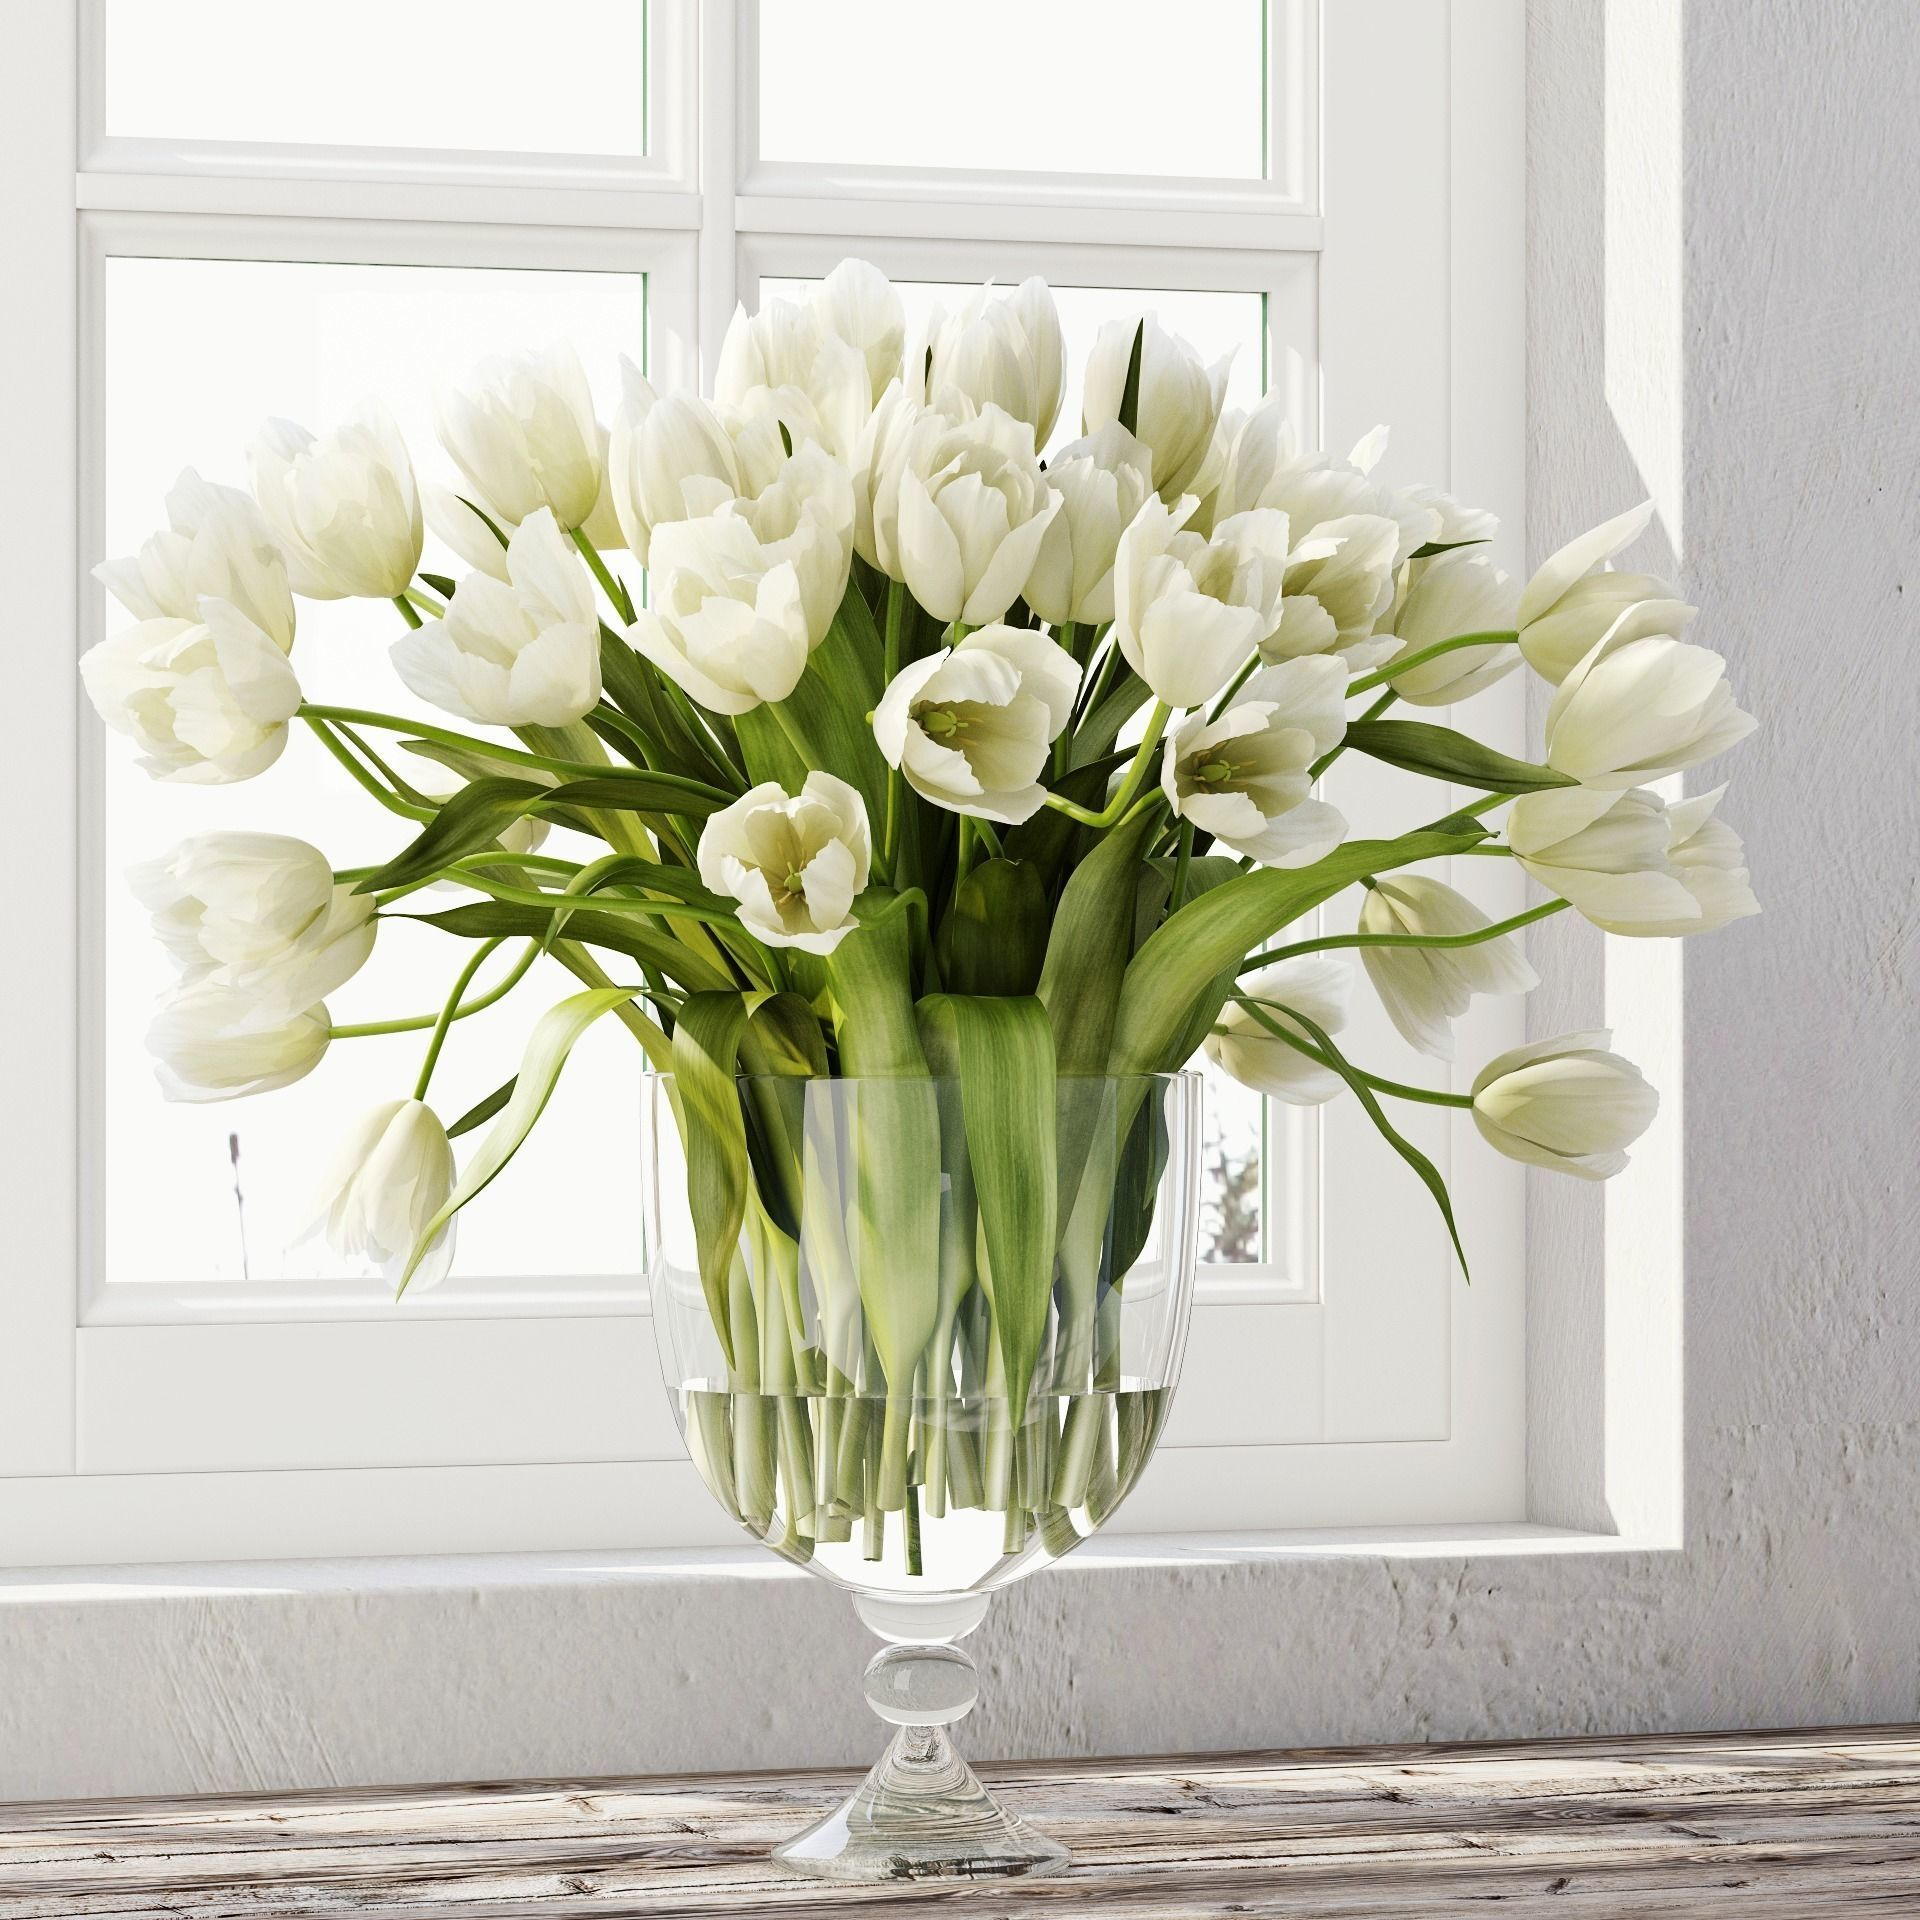 5 Incredible Flower Arrangements For a Last-Minute Dining Room Decor 1